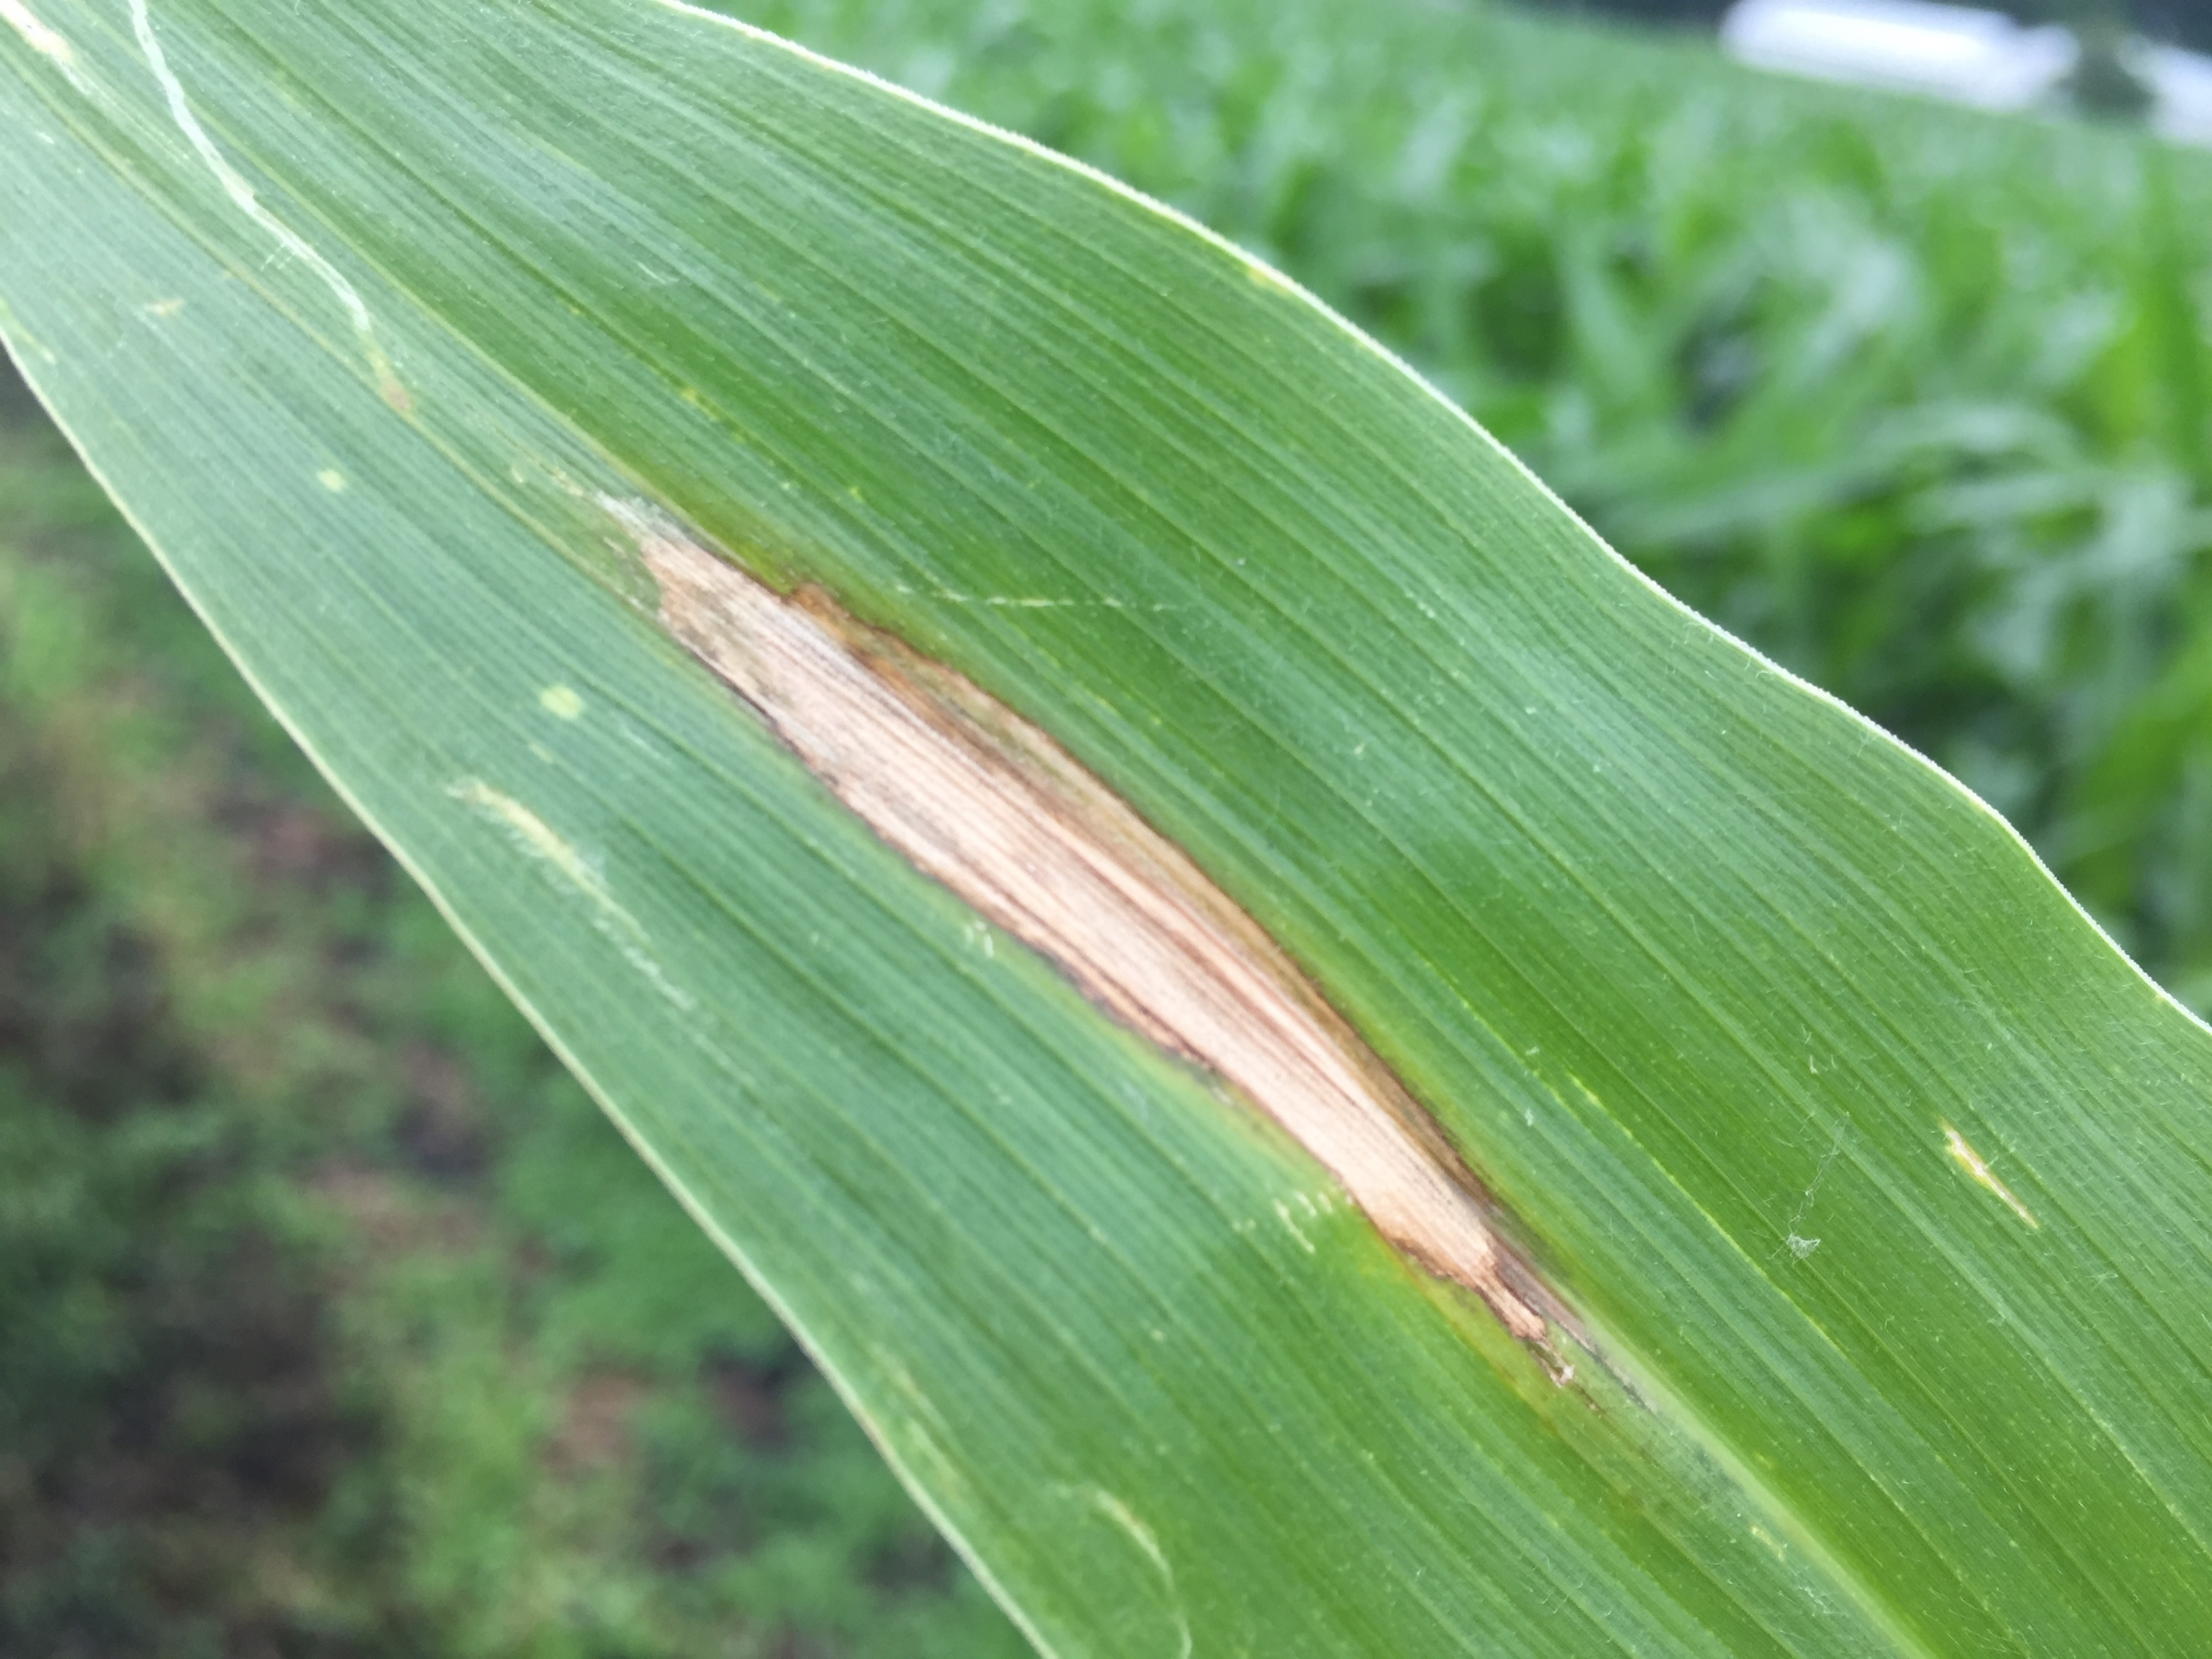 'Cigar-shaped' northern corn leaf blight lesion.